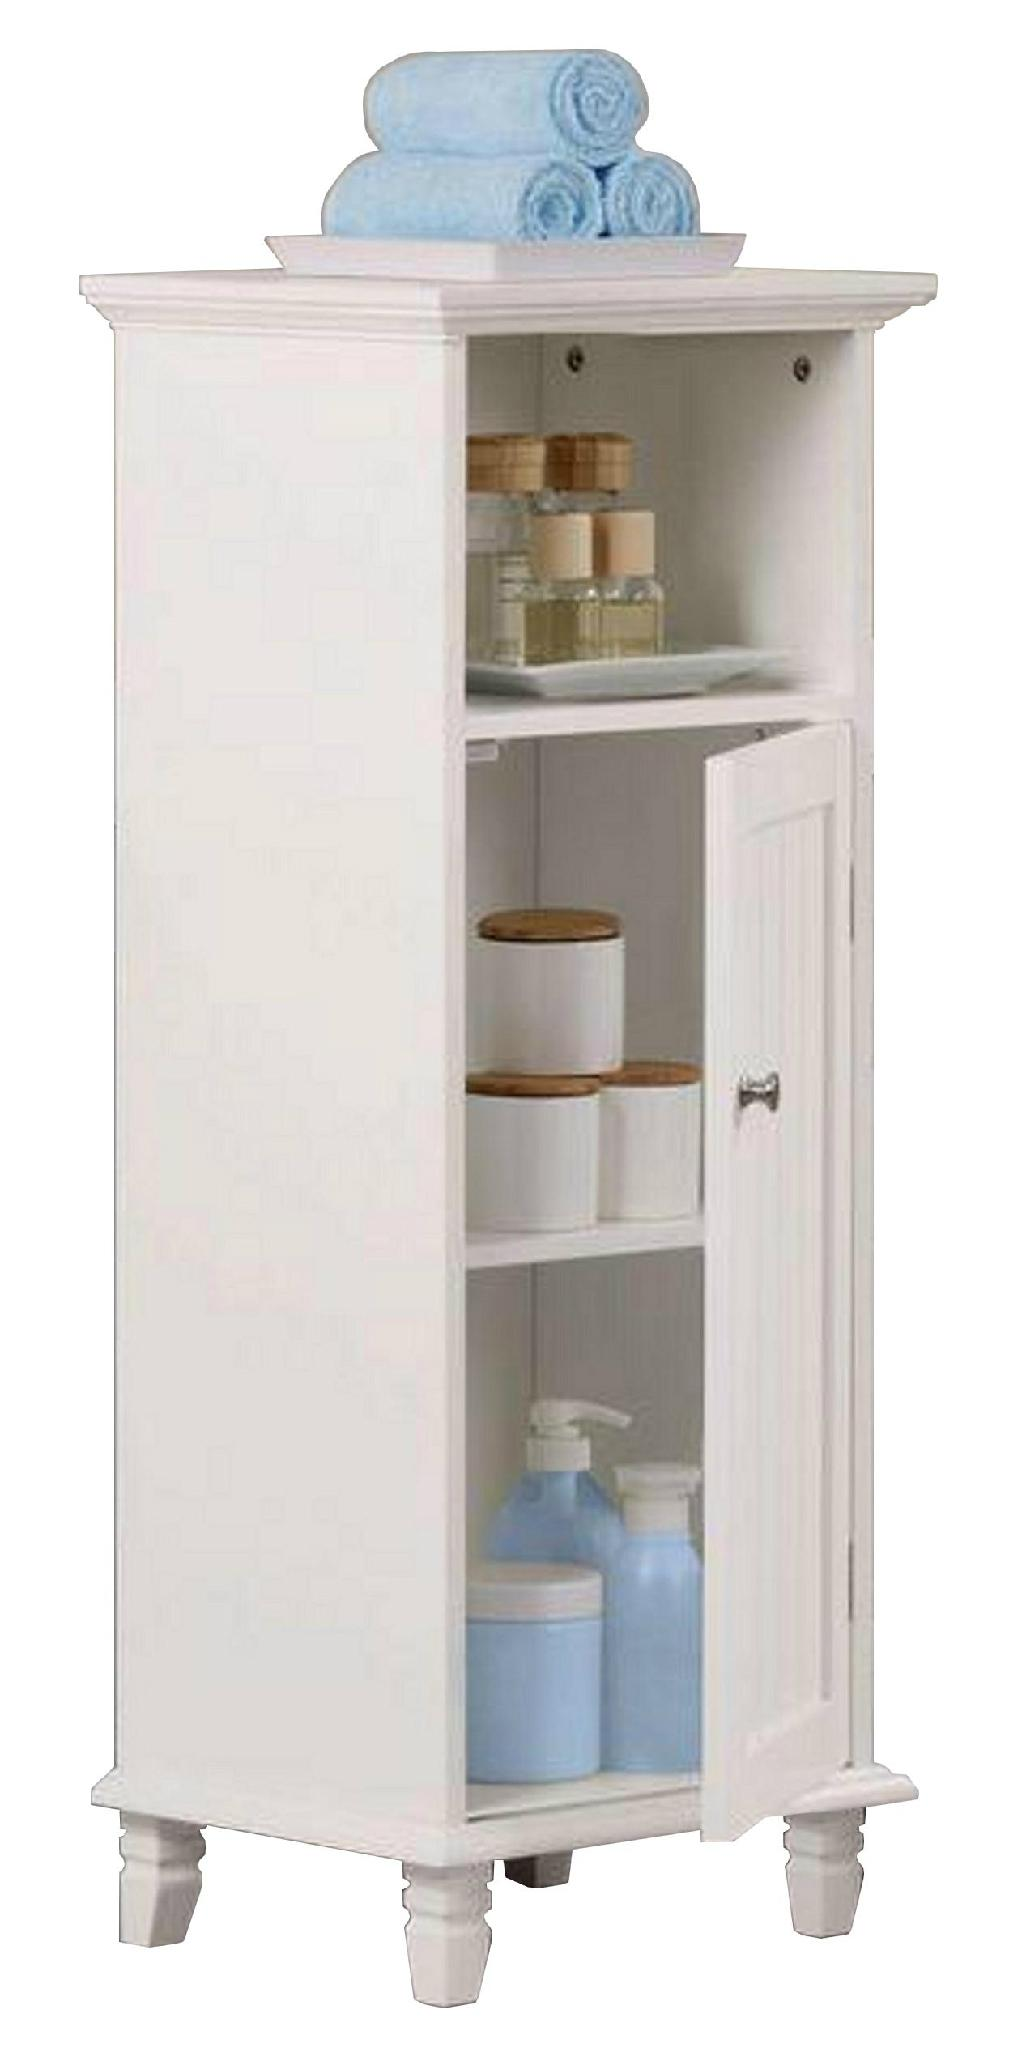 Bathroom Over Toilet Shelving Cabinet Linen Tower Wd 4166 4168 Mighty Taiwan Manufacturer